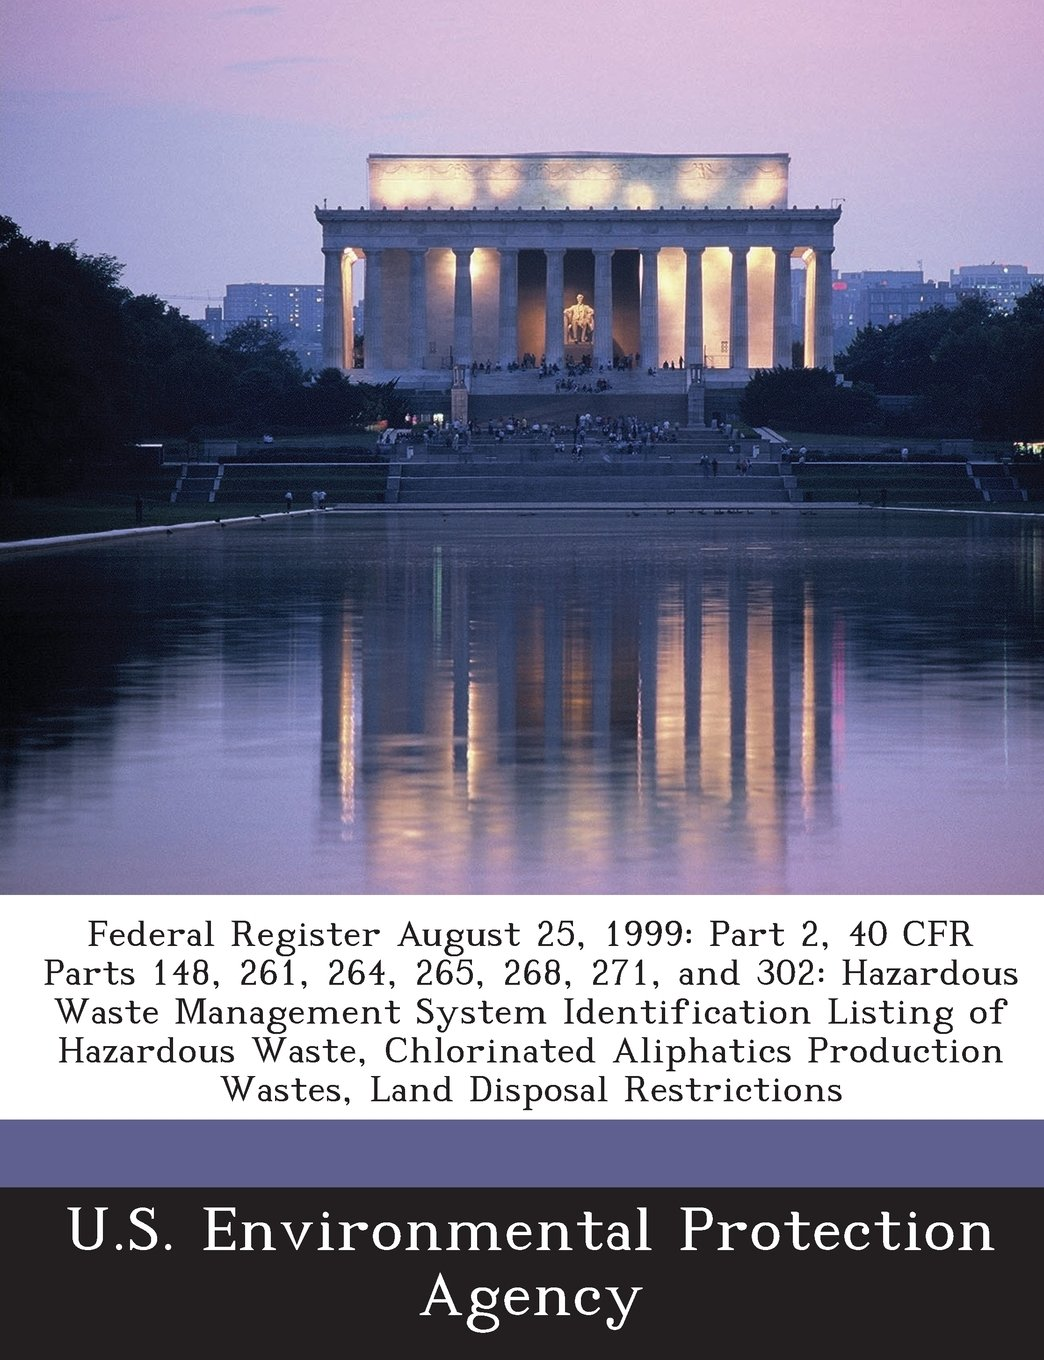 Federal Register August 25, 1999: Part 2, 40 CFR Parts 148, 261, 264, 265, 268, 271, and 302: Hazardous Waste Management System Identification Listing ... Production Wastes, Land Disposal Restrictions ebook